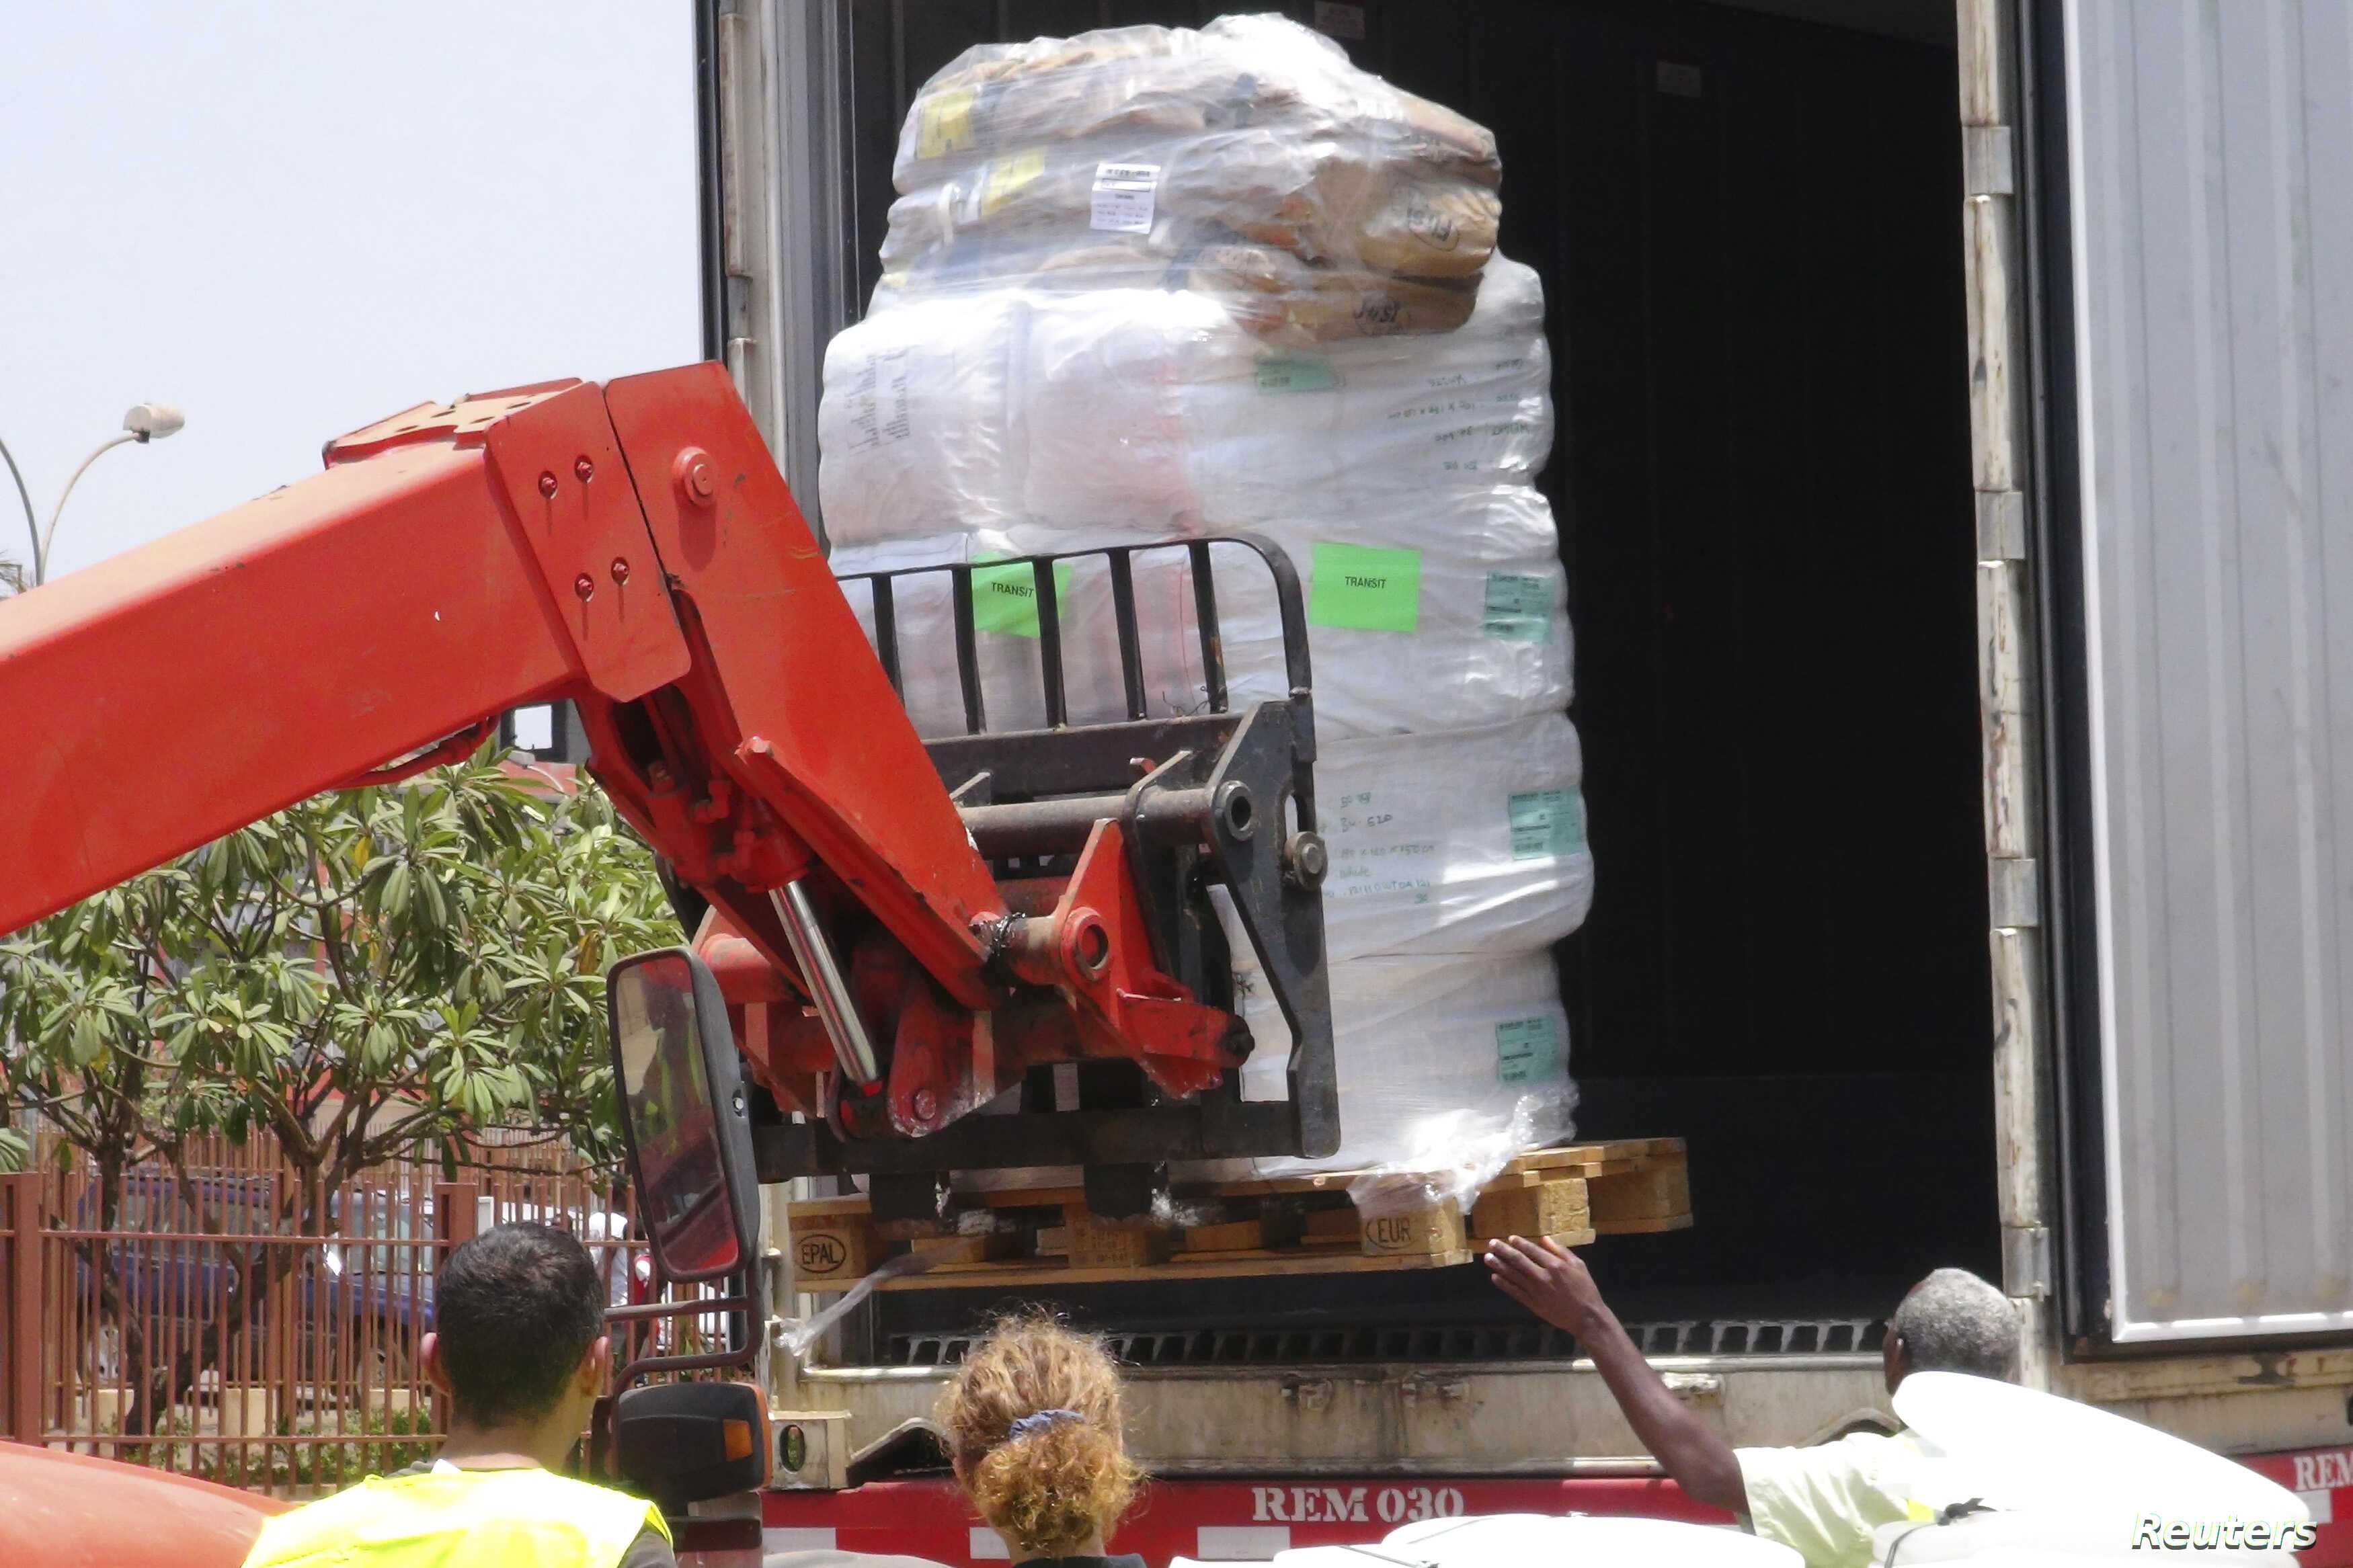 Workers from Doctors Without Borders unload emergency medical supplies to deal with an Ebola outbreak in Conakry, Guinea, March 23, 2014.